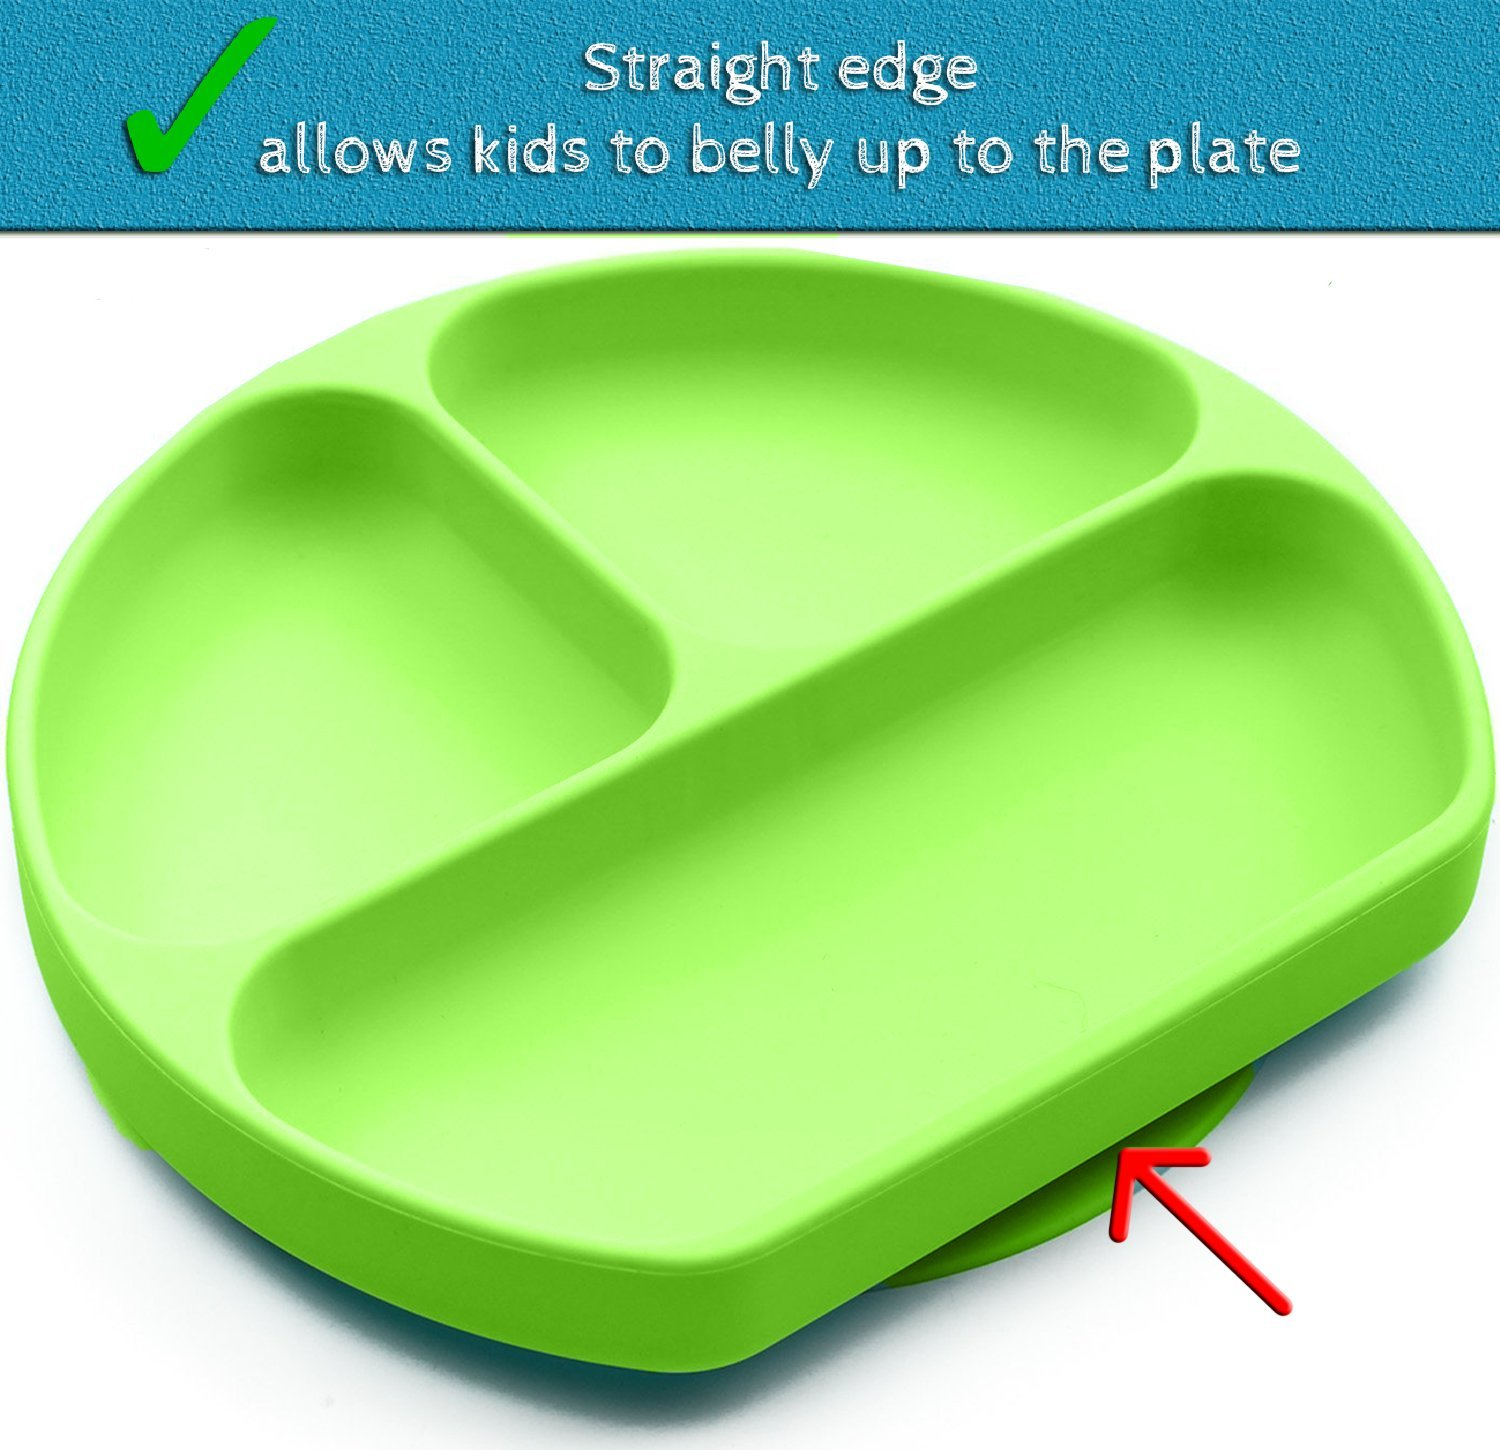 SiliKong Silicone Suction Plate for Toddlers, Fits Most Highchair Trays, BPA Free, Divided Baby Feeding Bowls Dishes for Kids (Green) by SiliKong (Image #6)